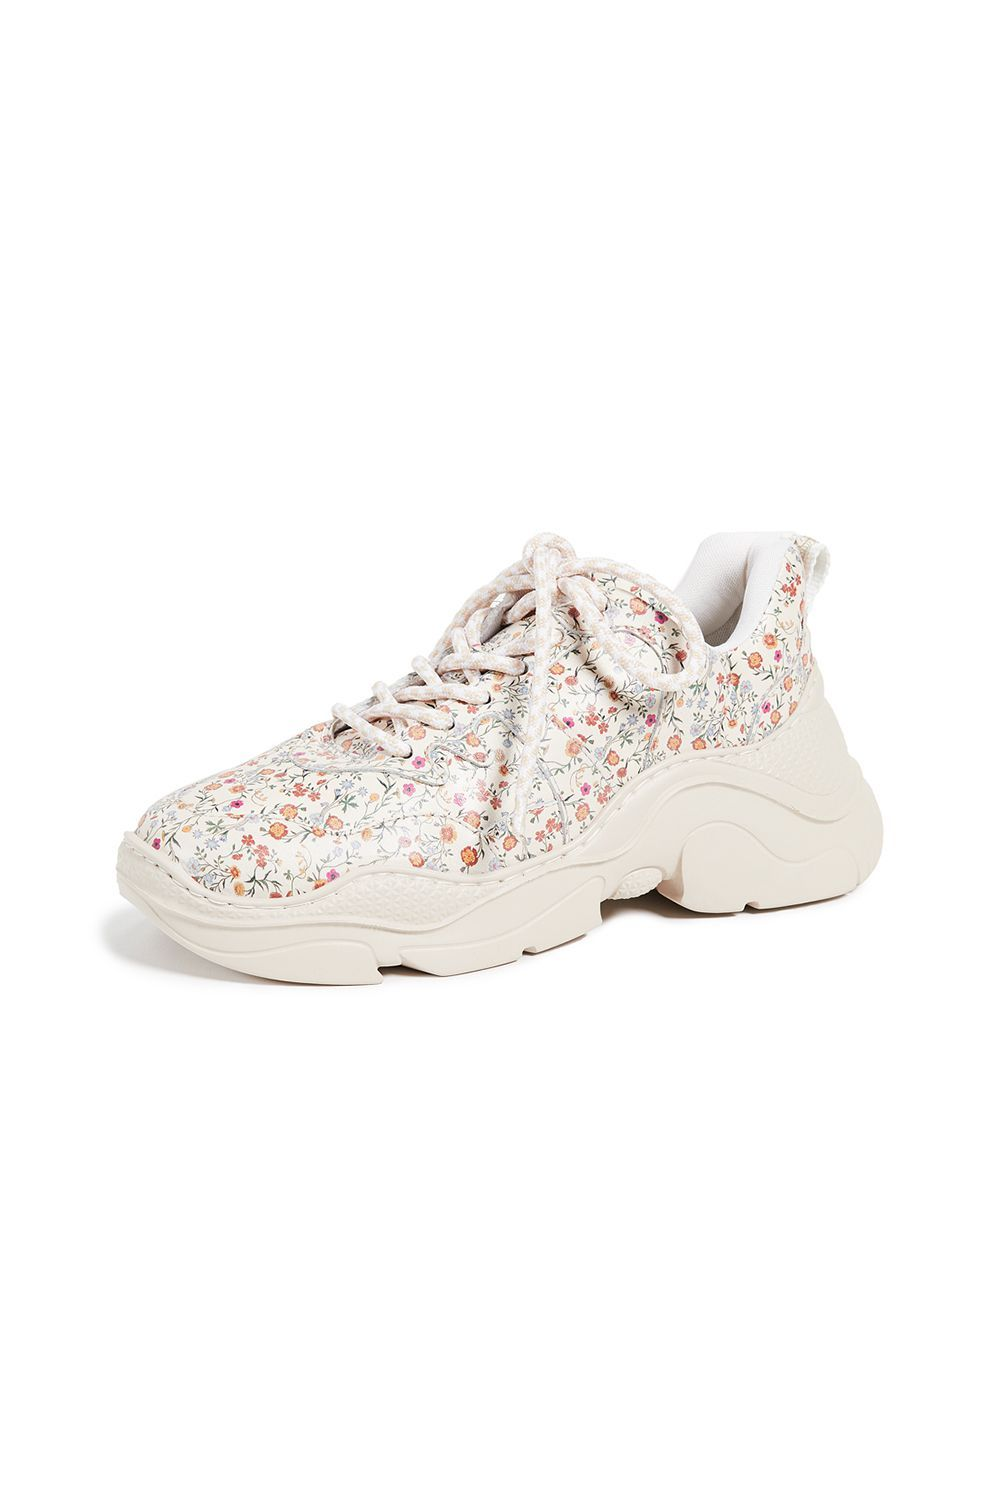 Jackye Dad Sneakers Schutz shopbop.com $185.00 SHOP IT I've had my eye on this sold-out floral sneaker from Schutz since last season and it's finally back in stock (!!). The blooming floral print coupled with the chunky sole gives it street style cred, and I can see myself wearing this with a white summer dress or high-waisted mom jeans.